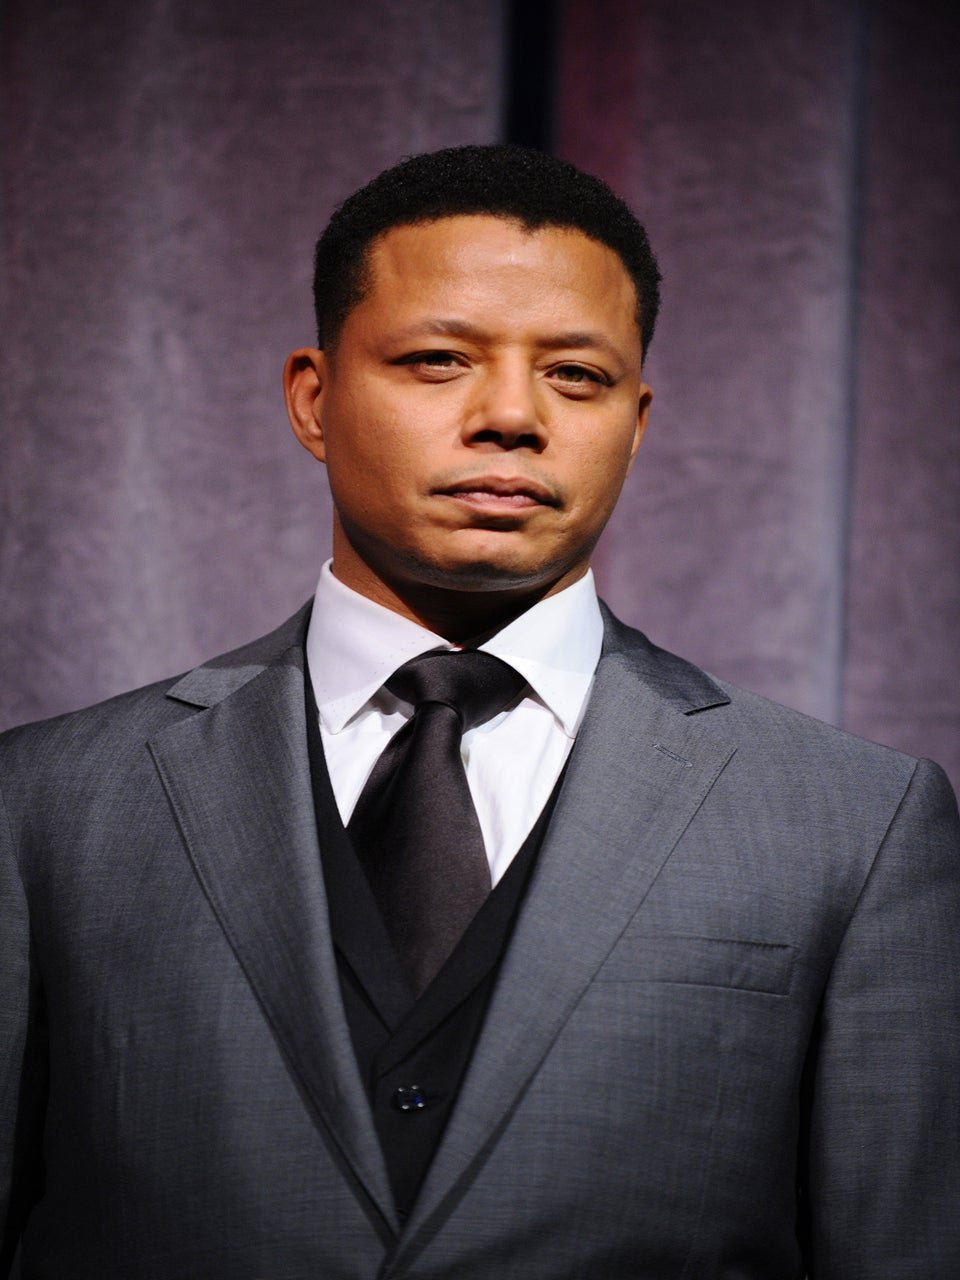 Terrence Howard's Divorce Goes from Bad to Worse